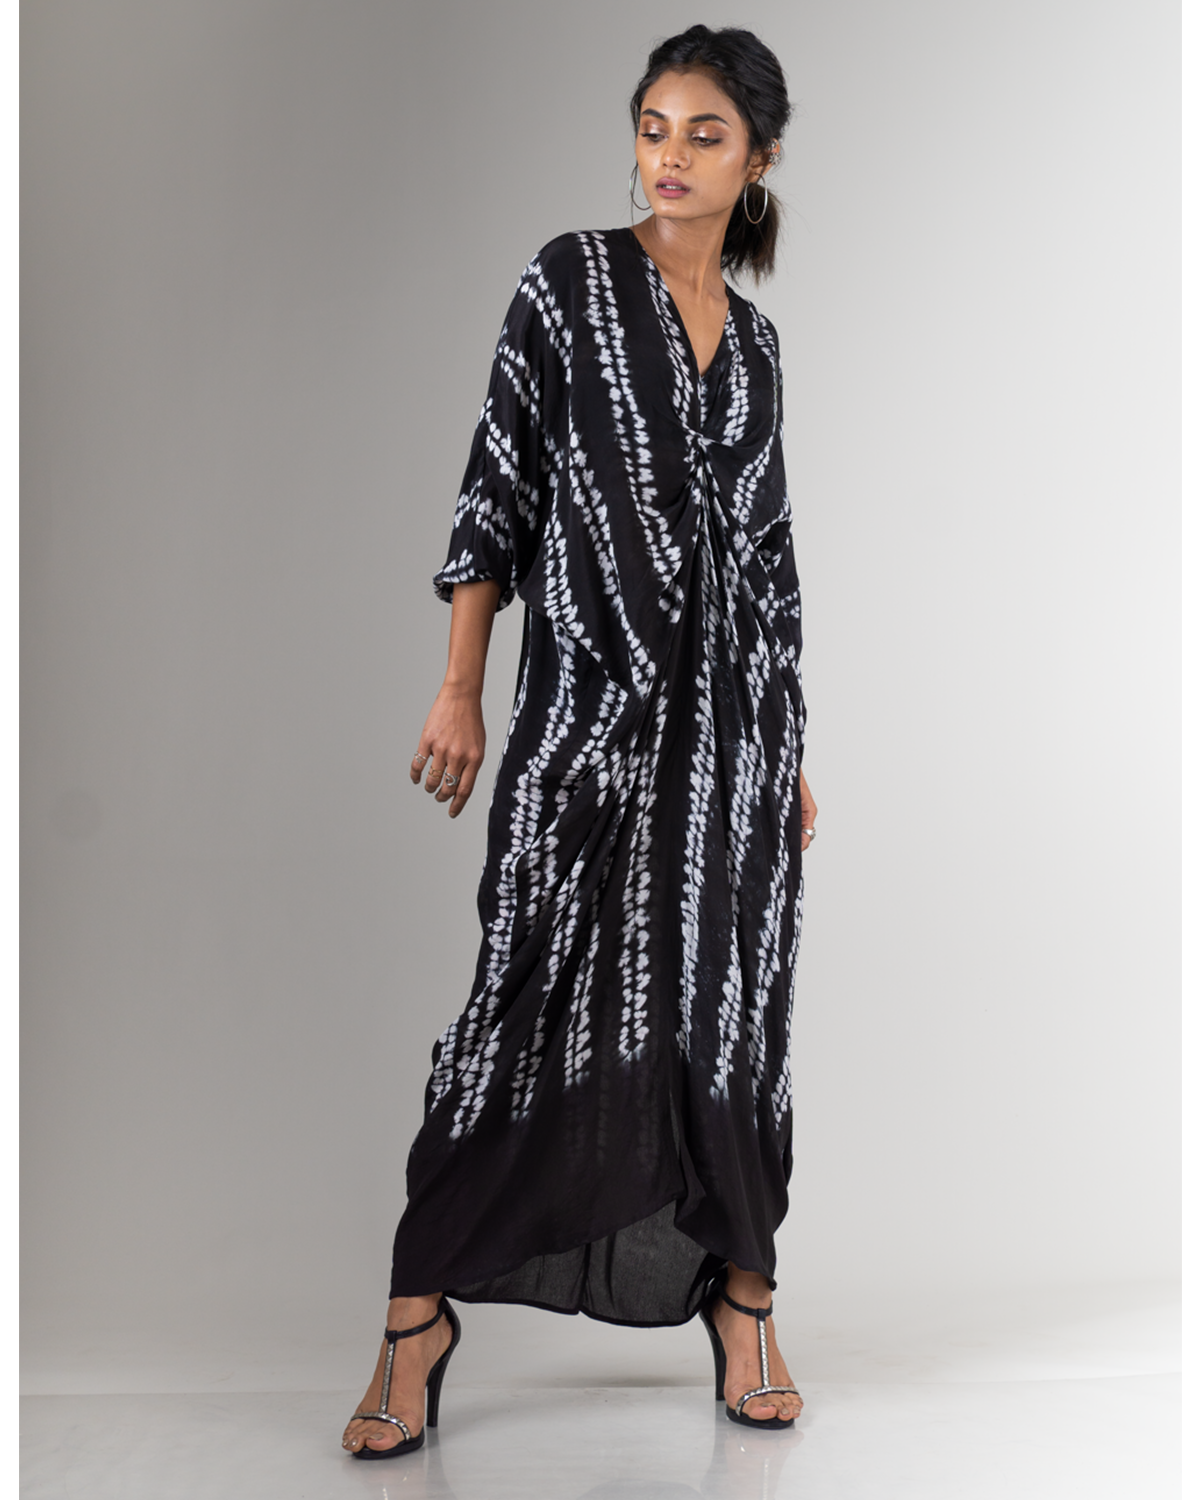 Sleek Black Shibori Dress